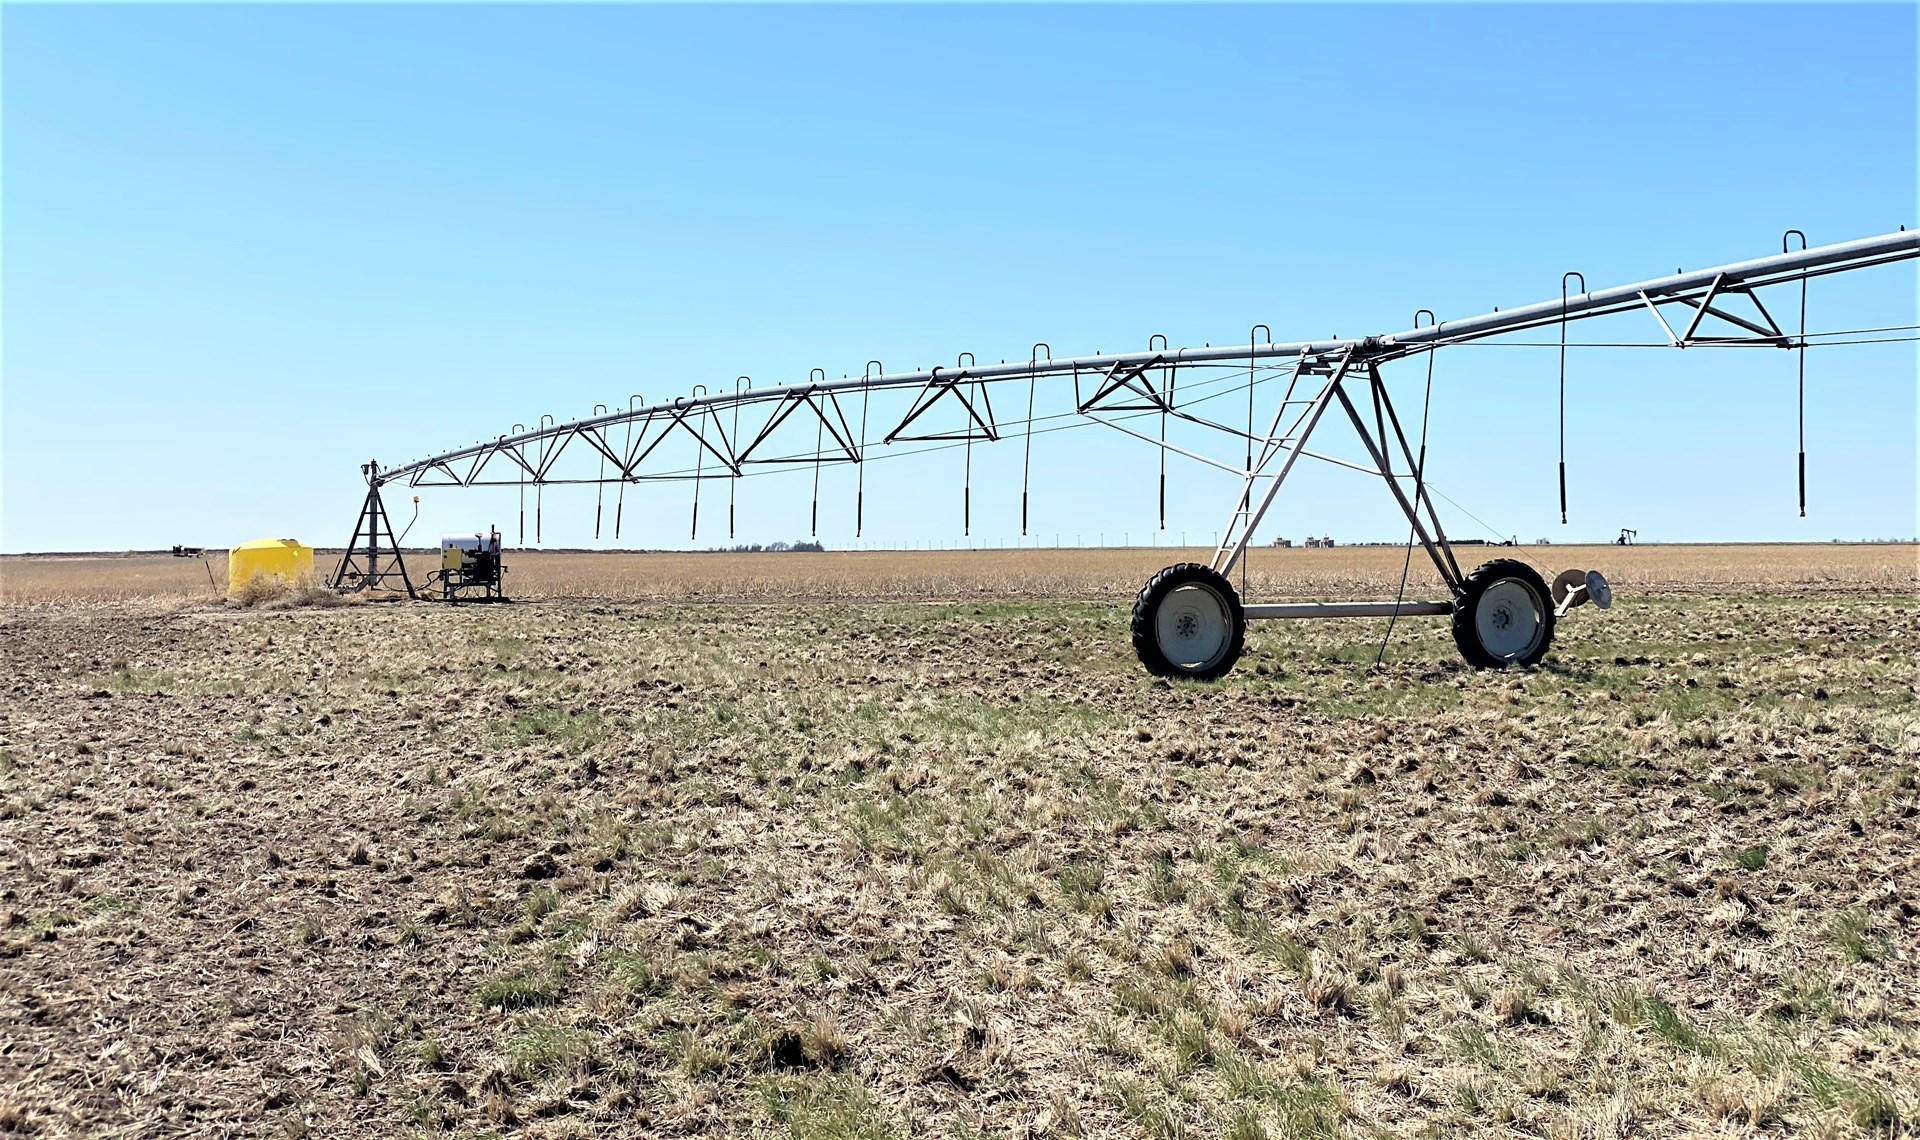 160.5 +/- Acres Irrigated Pivot Lane County, KS For Sale